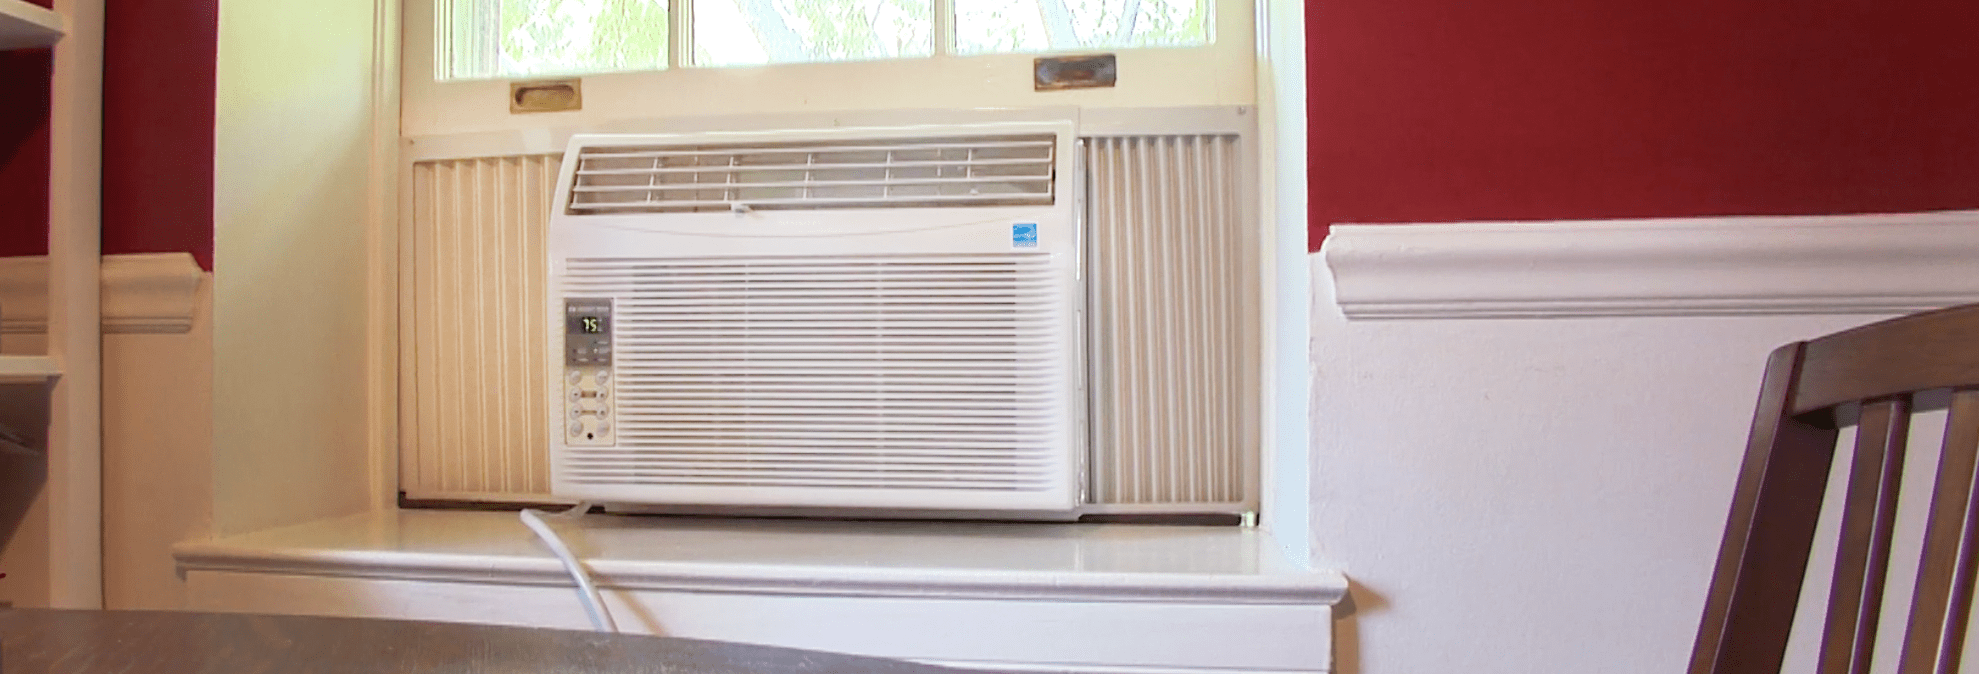 Central Air Conditioner Ratings And Reviews >> How to Size a Window Air Conditioner - Consumer Reports